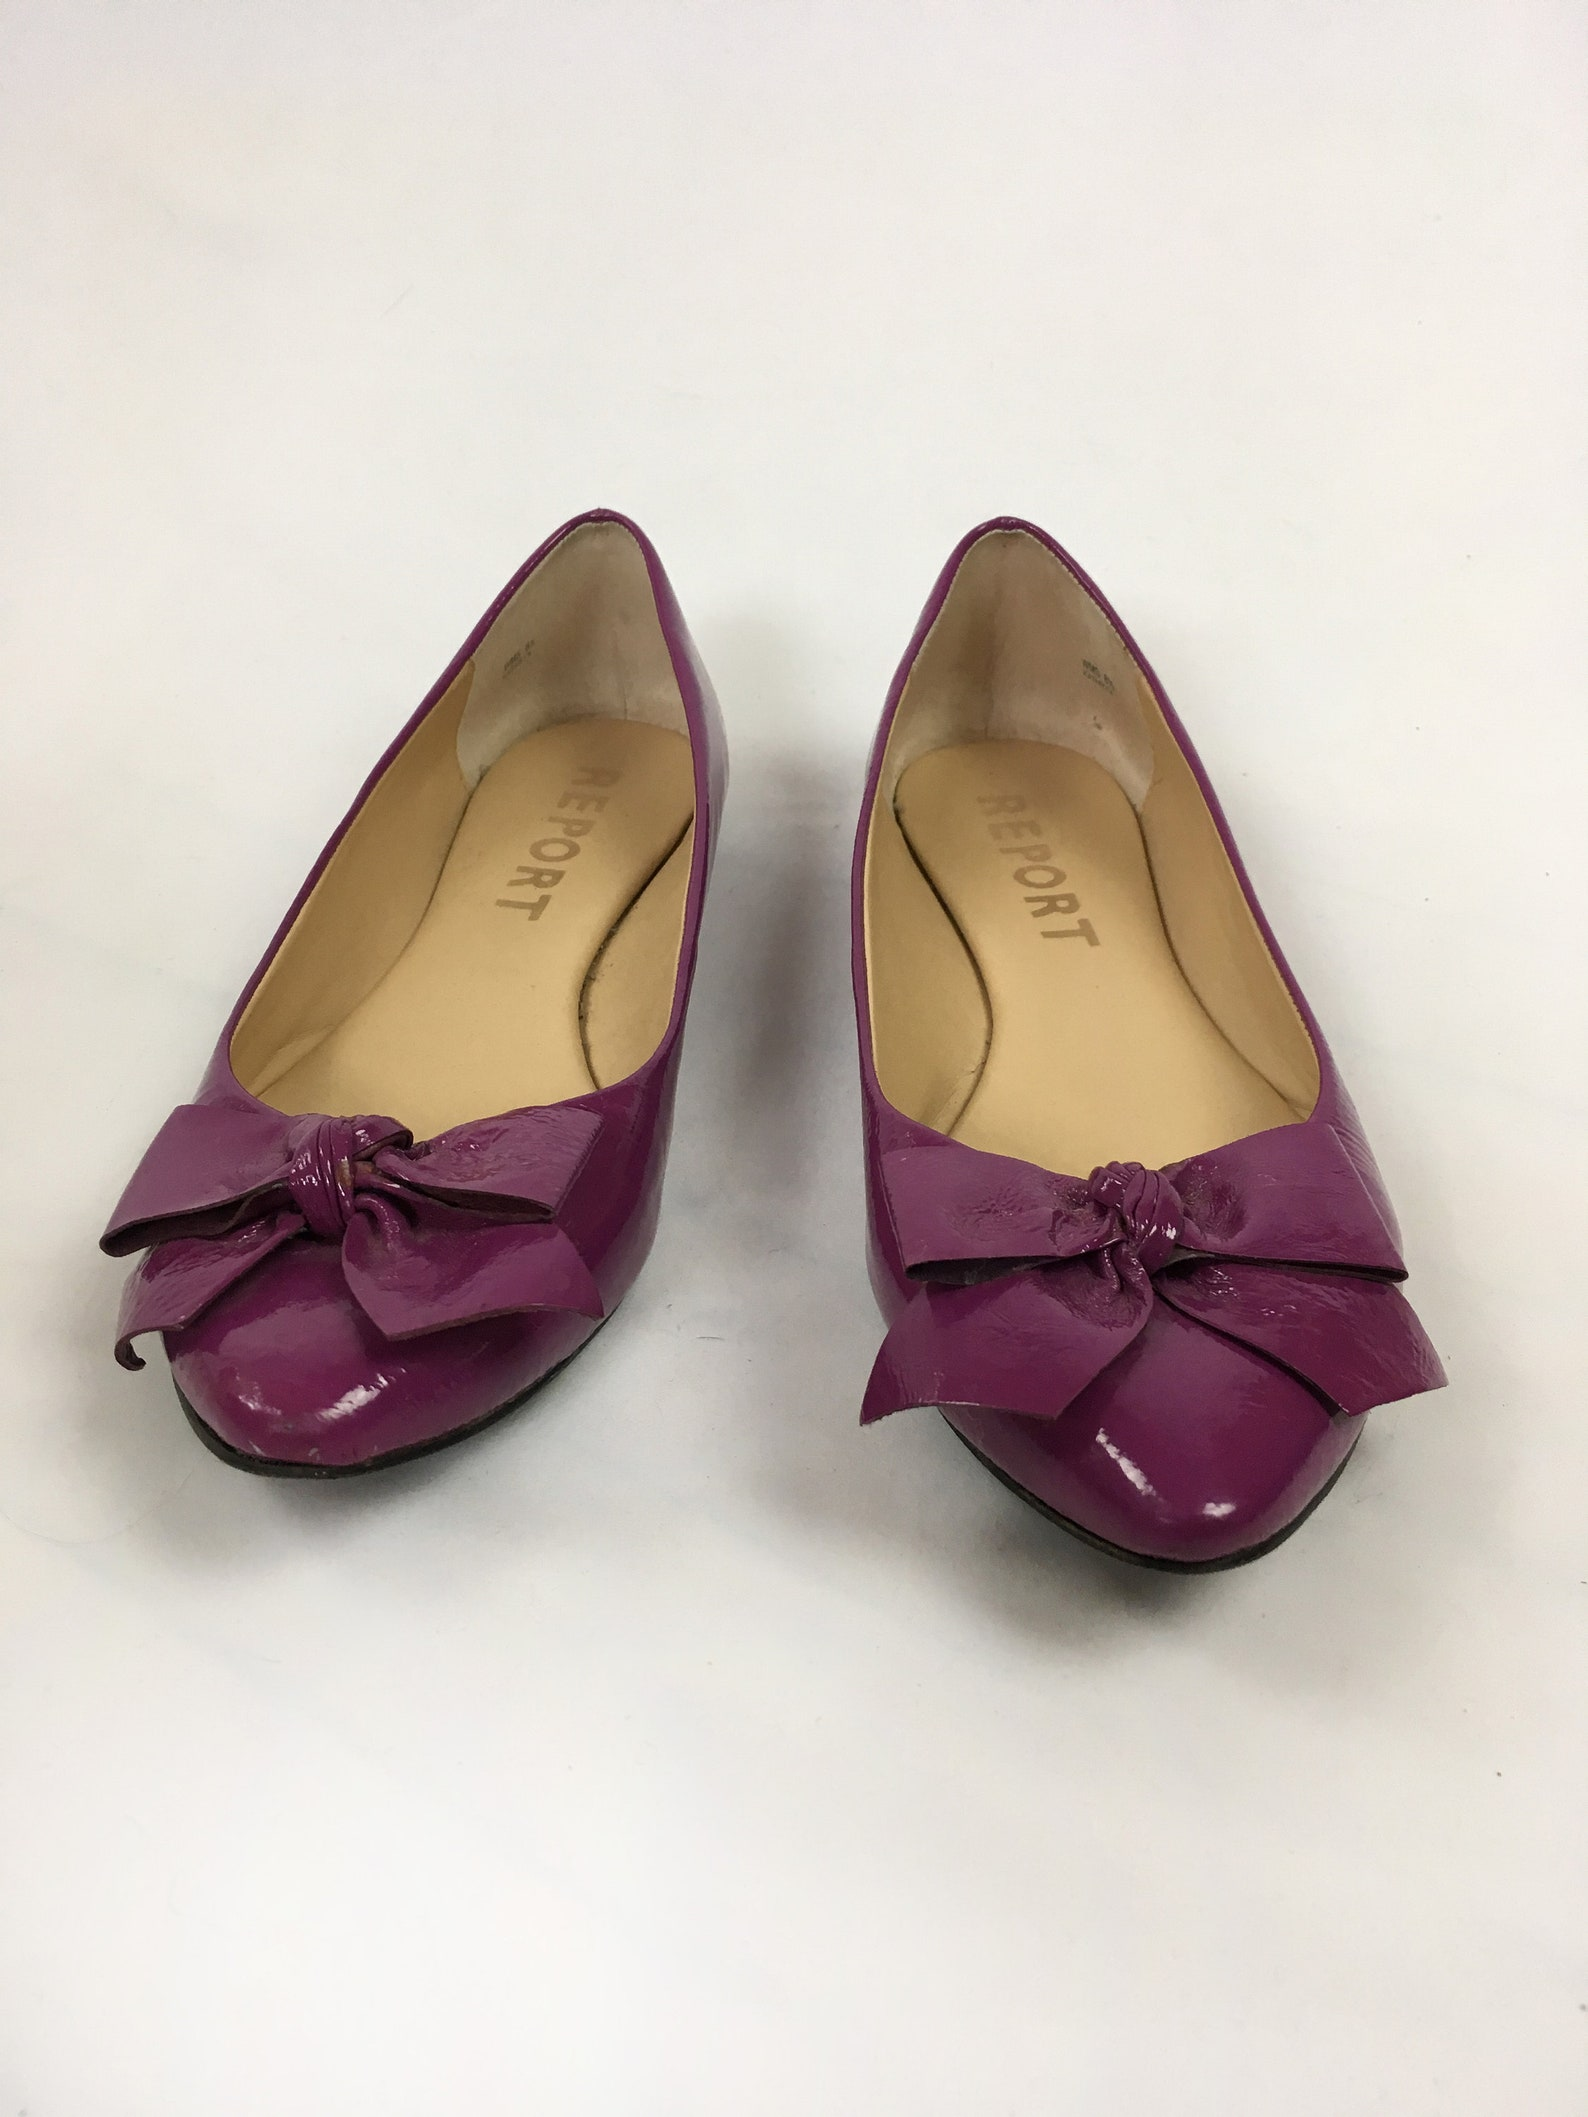 womens purple patent leather shoes / ballet flats report / slip ons shoes / size 8.5